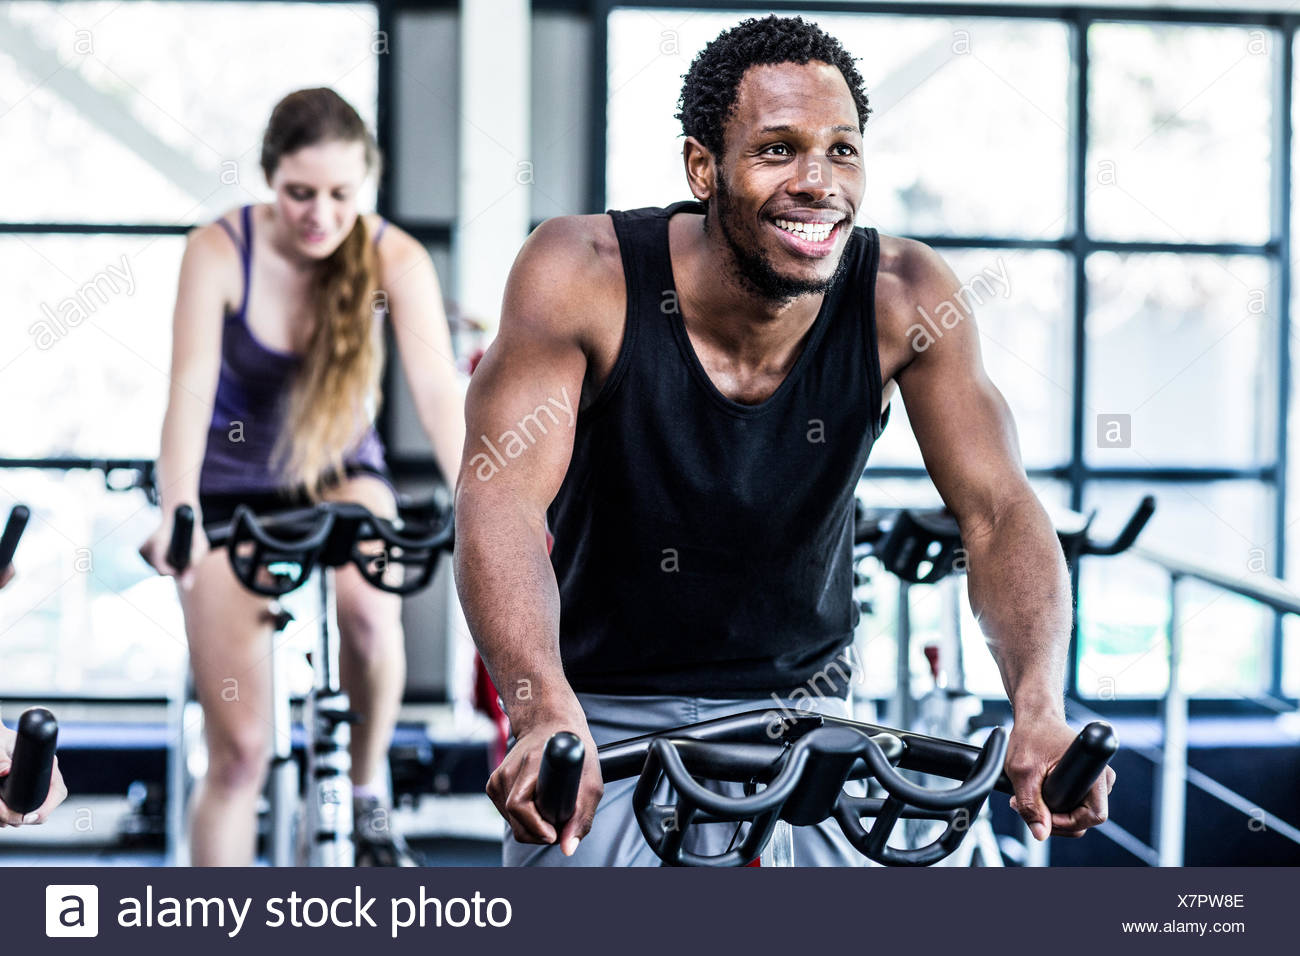 Fit man working out at spinning class - Stock Image